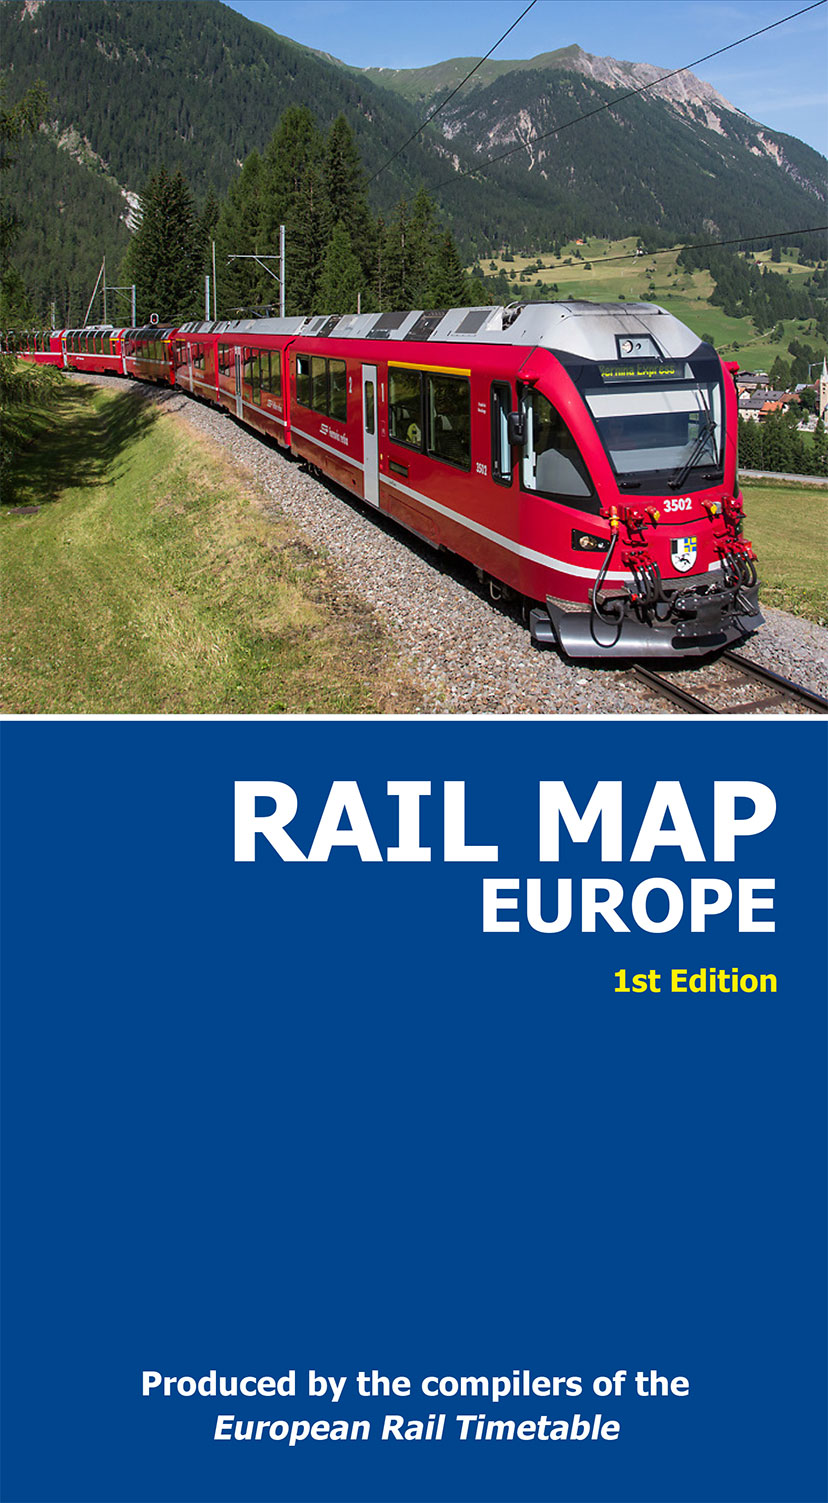 <p>1st edition of the Rail Map Europe, published in December 2015</p>